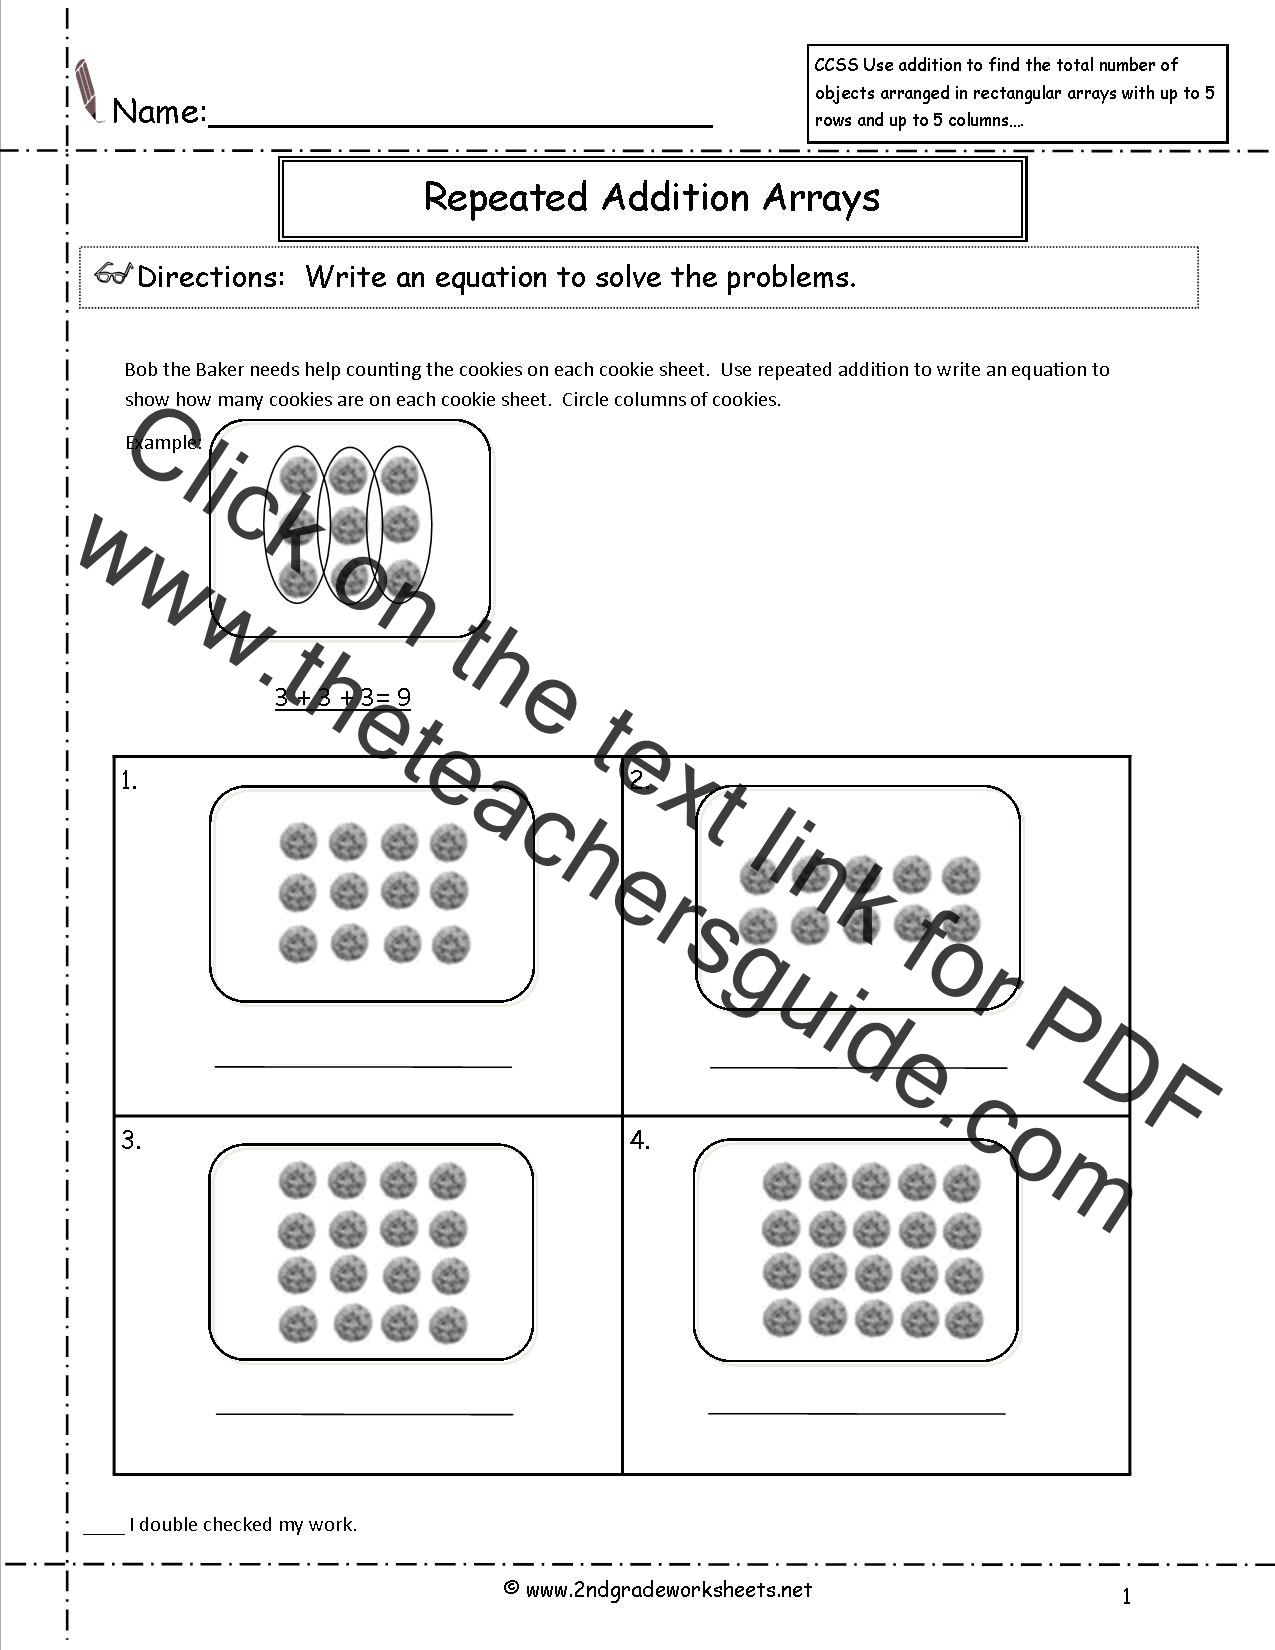 Worksheets 2nd Grade Common Core Math Worksheets 2nd grade math common core state standards worksheets ccss 2 oa 4 worksheets